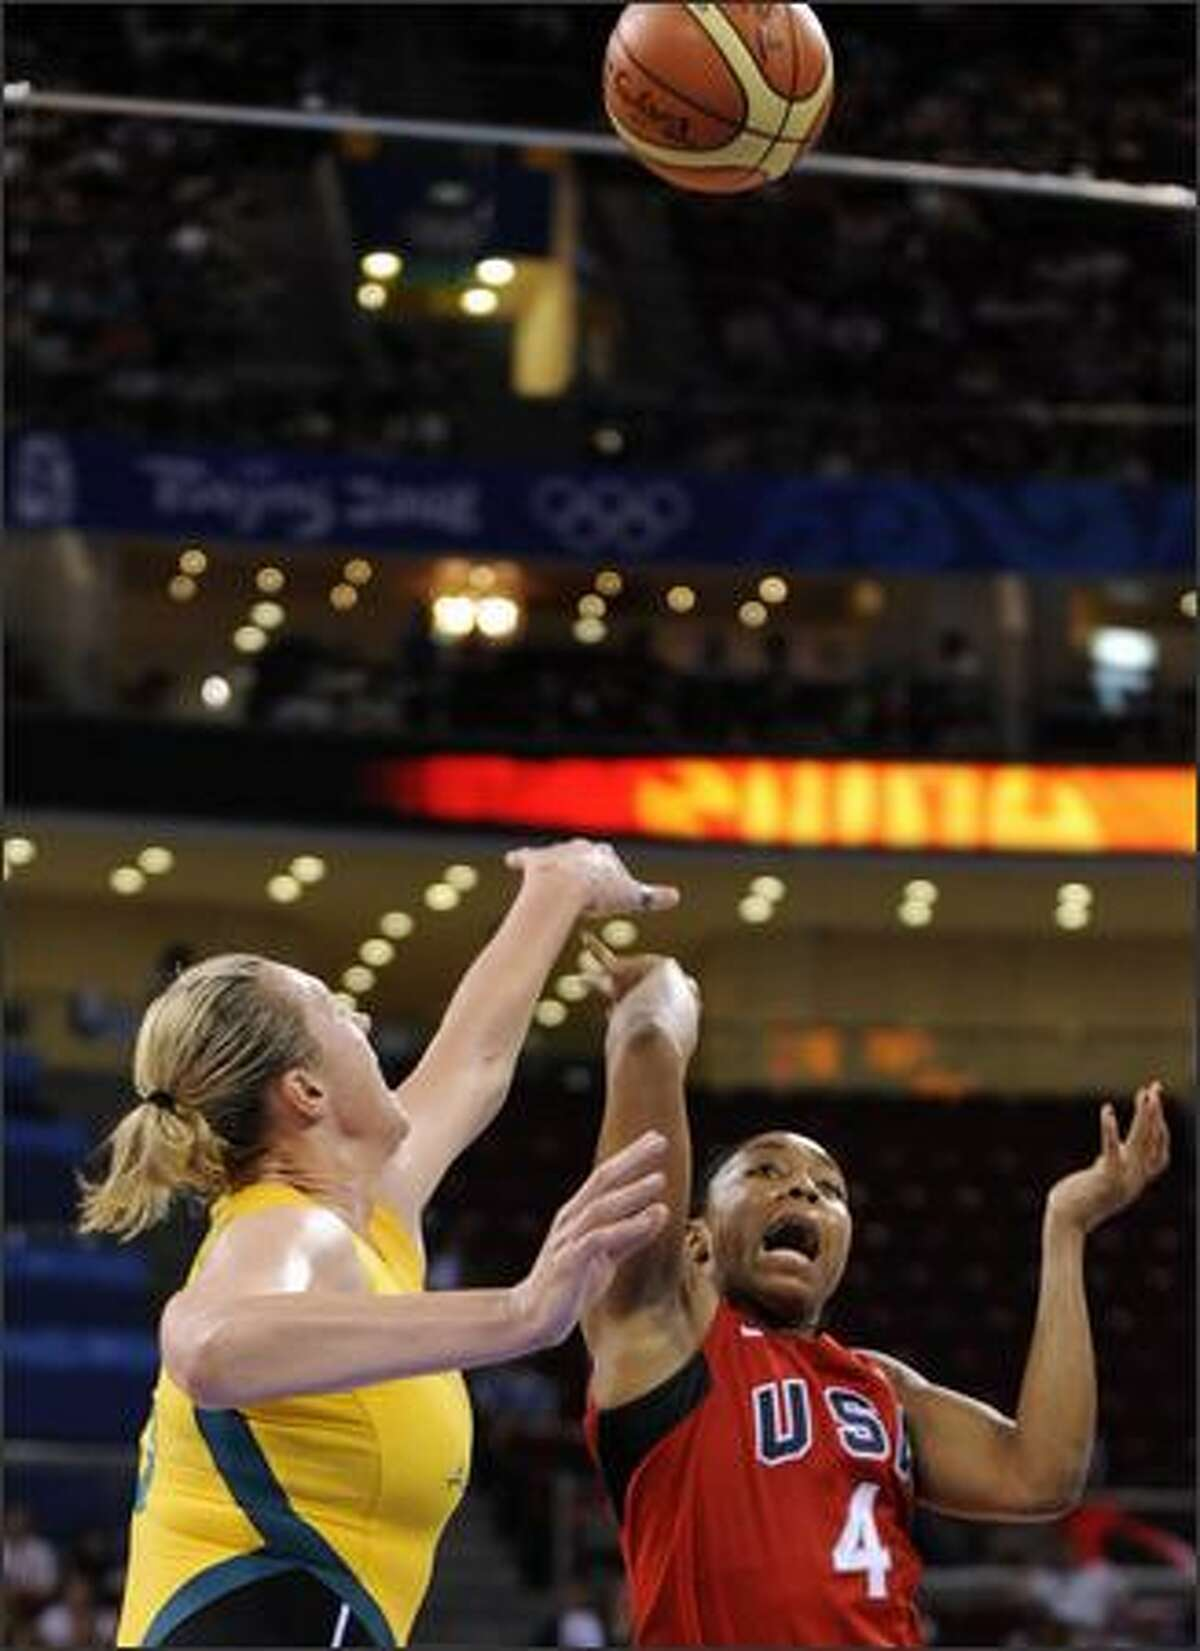 USA's Cappie Pondexter (right) and Australia's Suzy Batkovic jump for the ball.